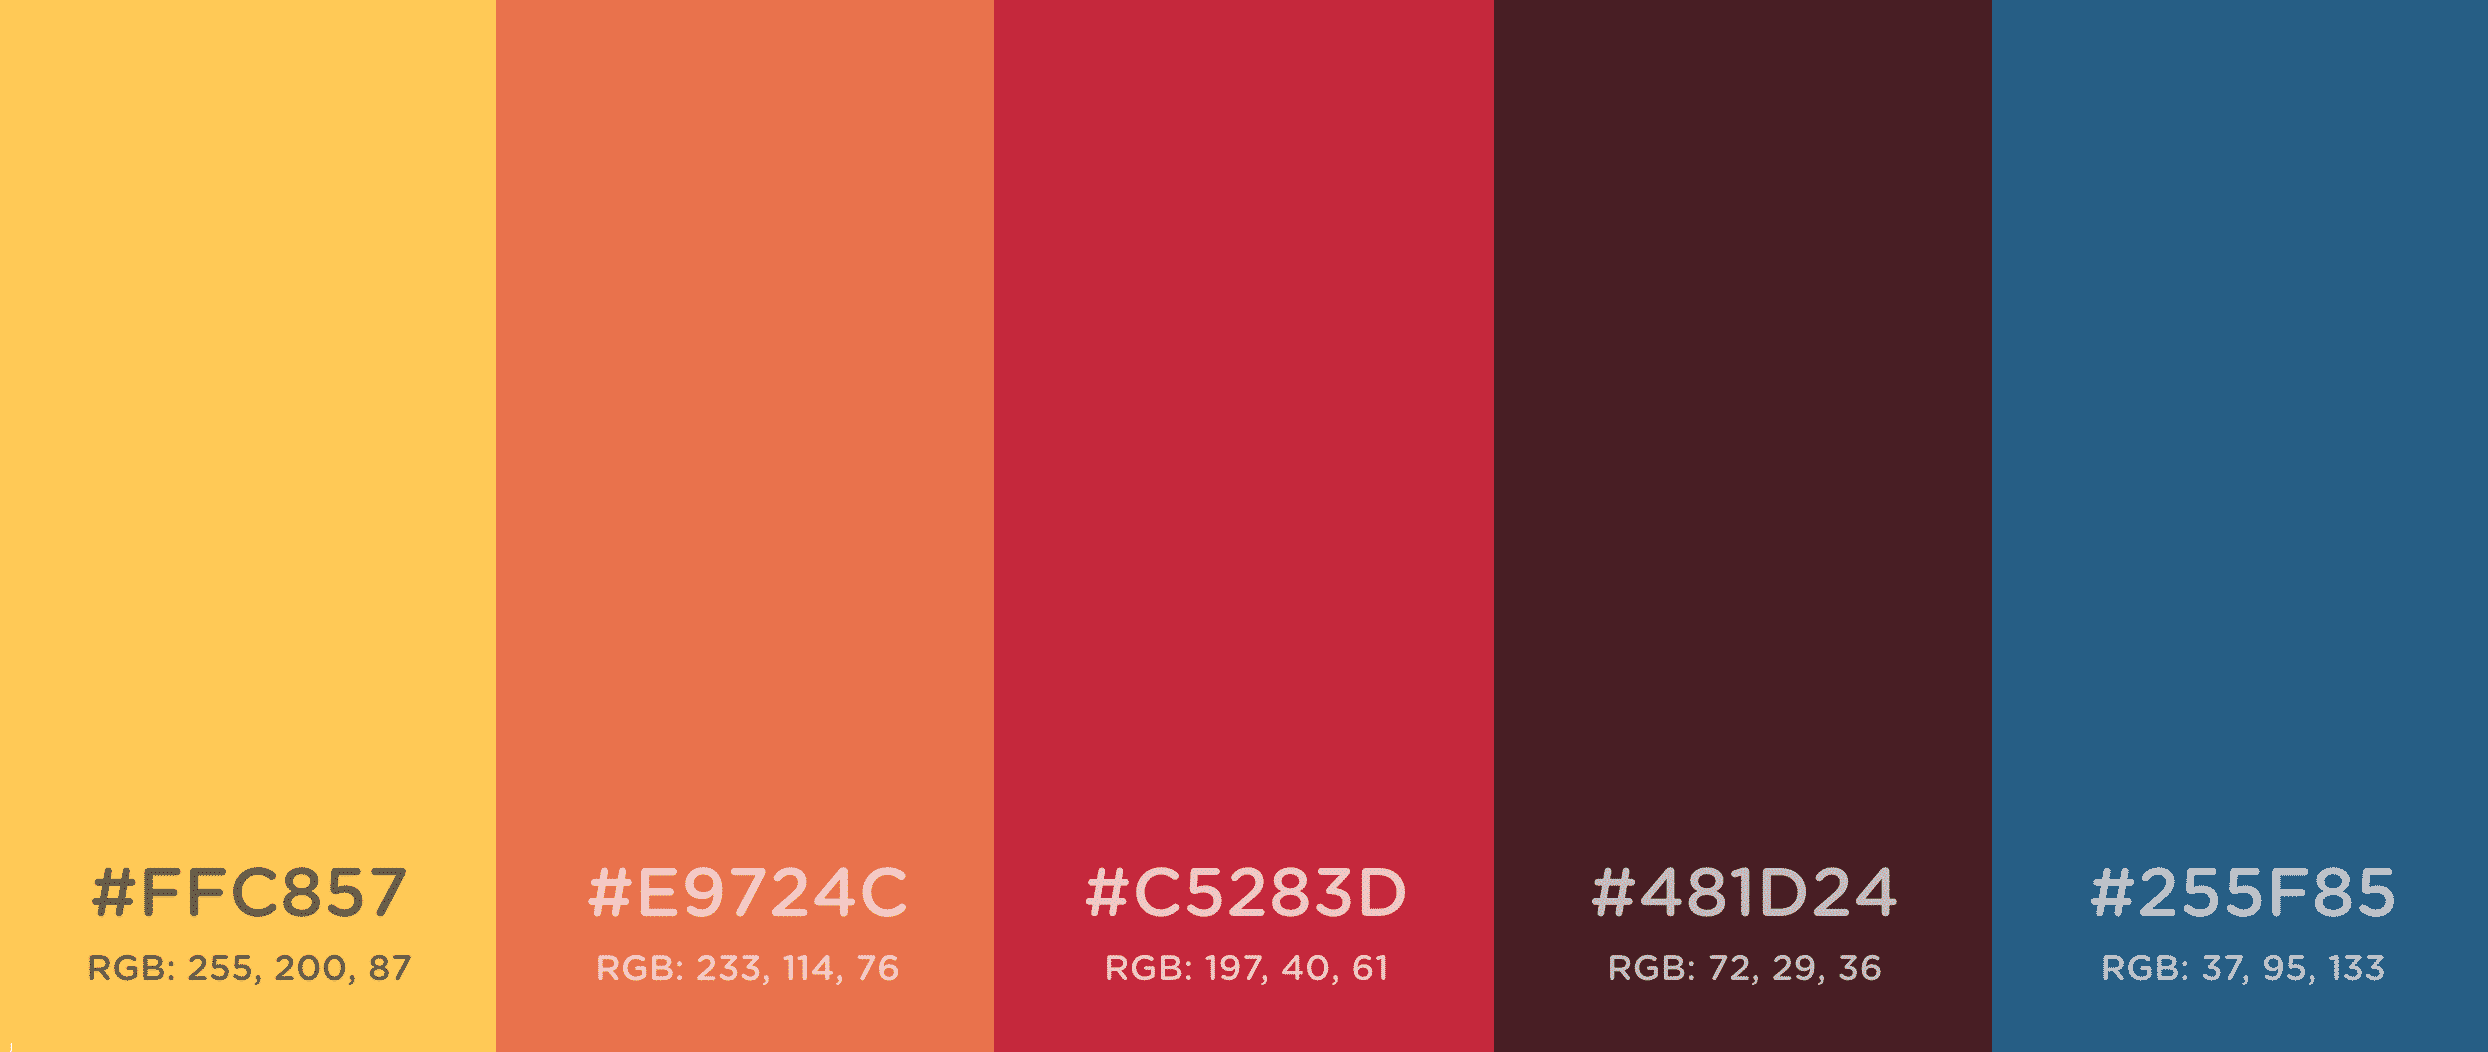 Hex colors and their RGB numbers